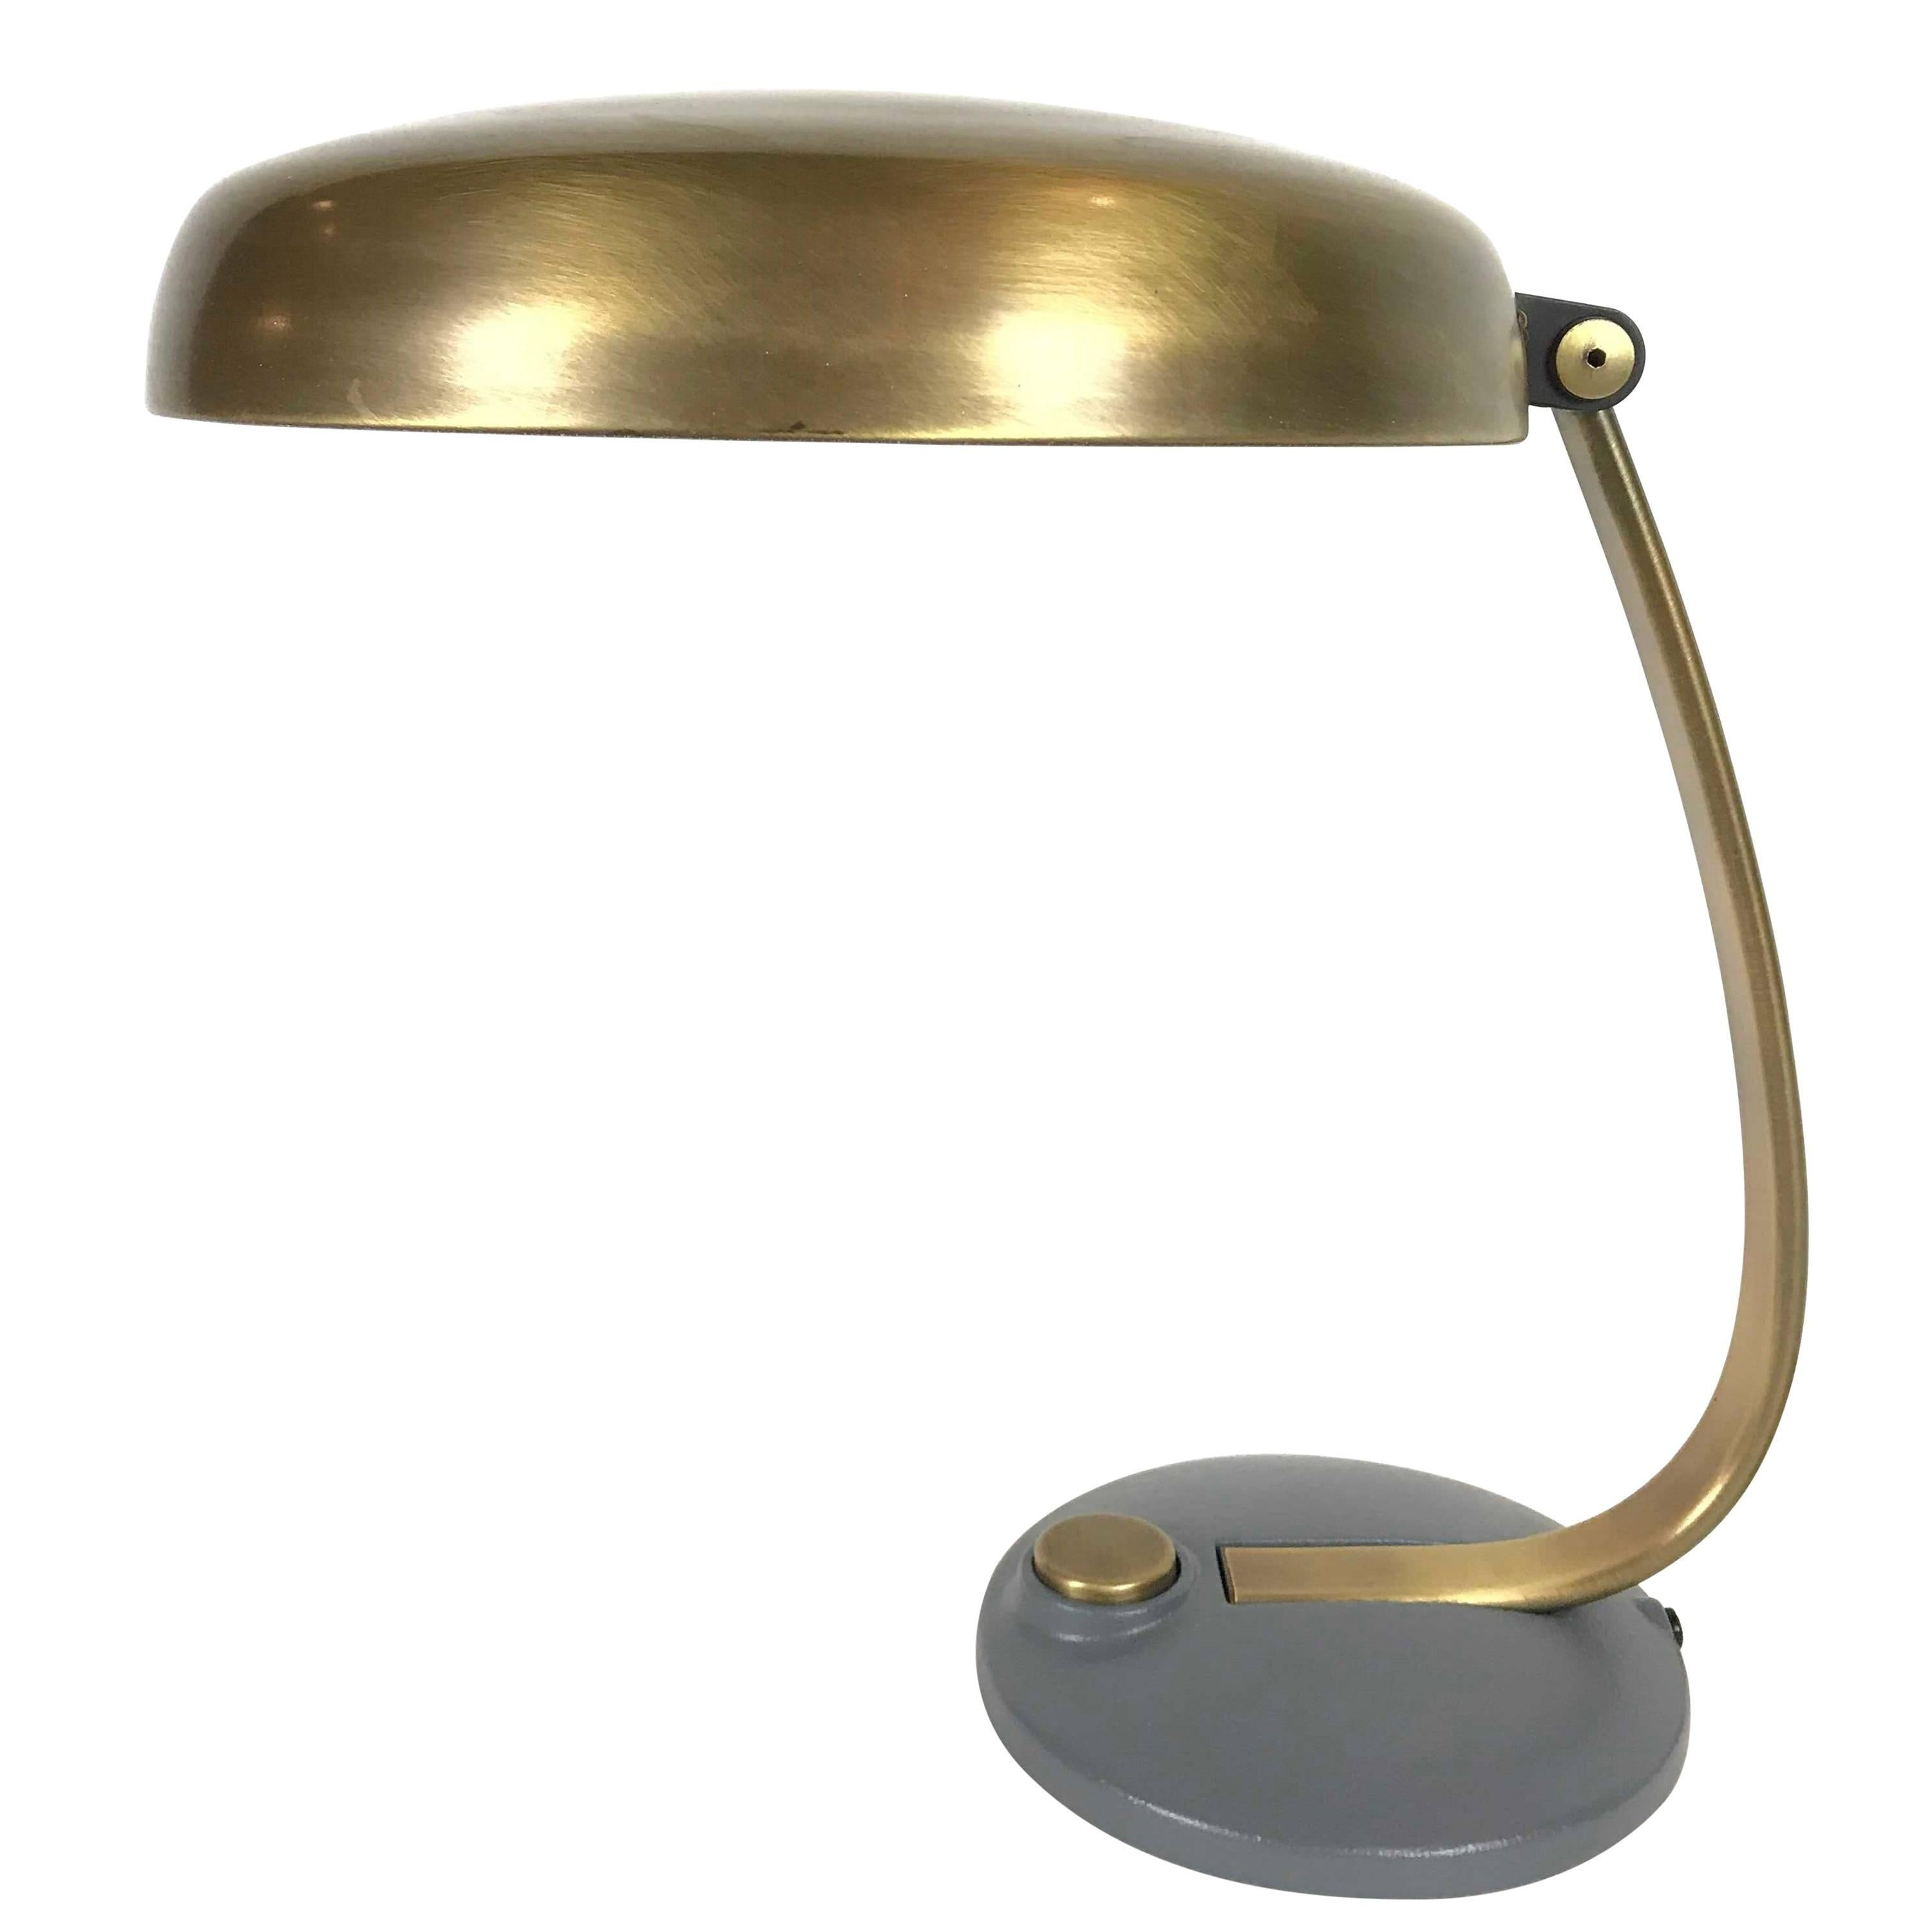 Hillebrand UFO Mid-Century Brass Table Lamp, 1960s Germany